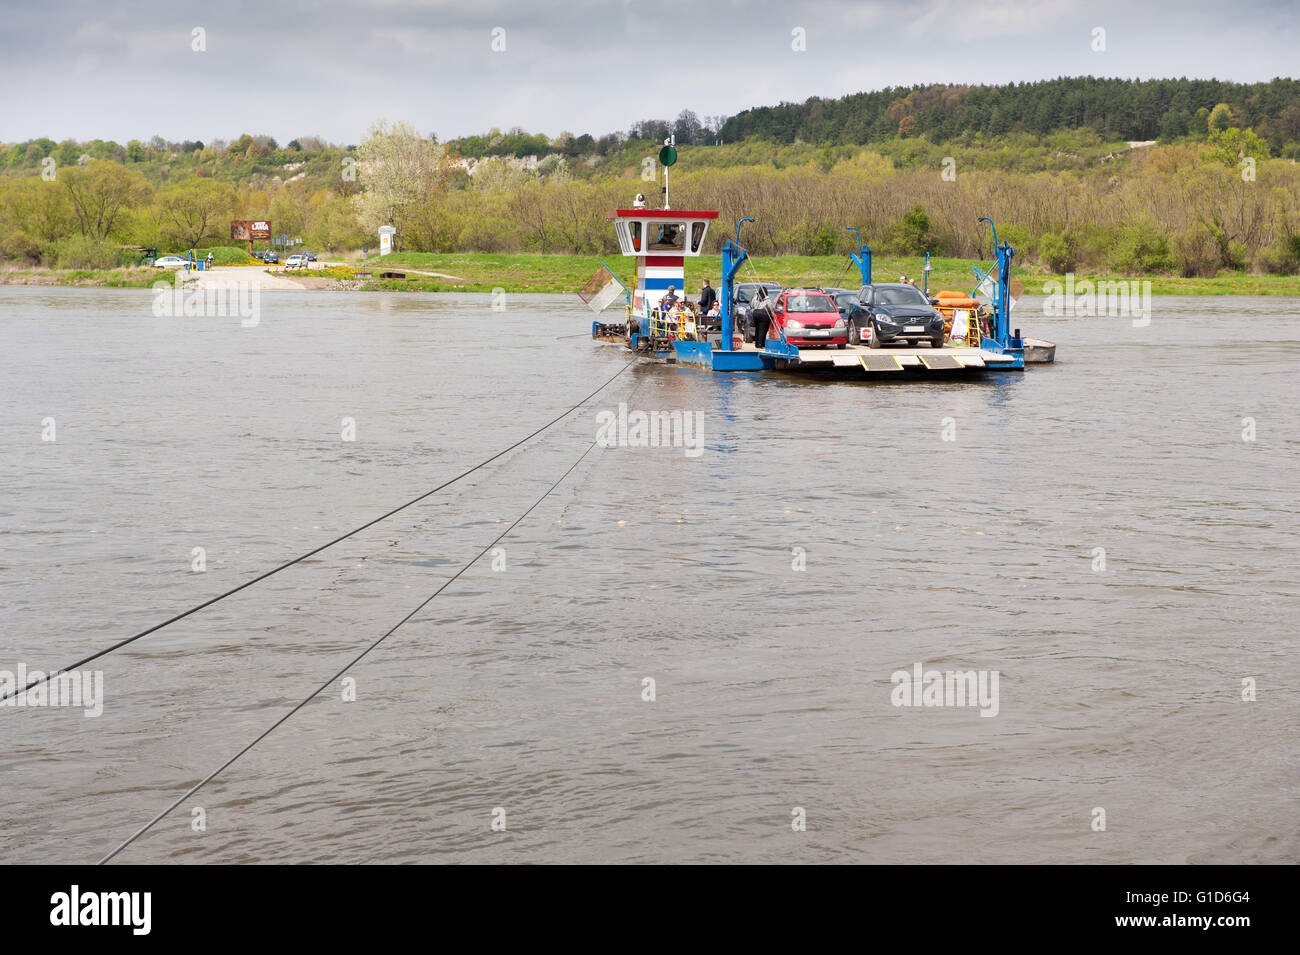 Cable ferry ship floating, course to Kazimierz Dolny from Janowiec in Poland, Europe, passenger local floating bridge. - Stock Image